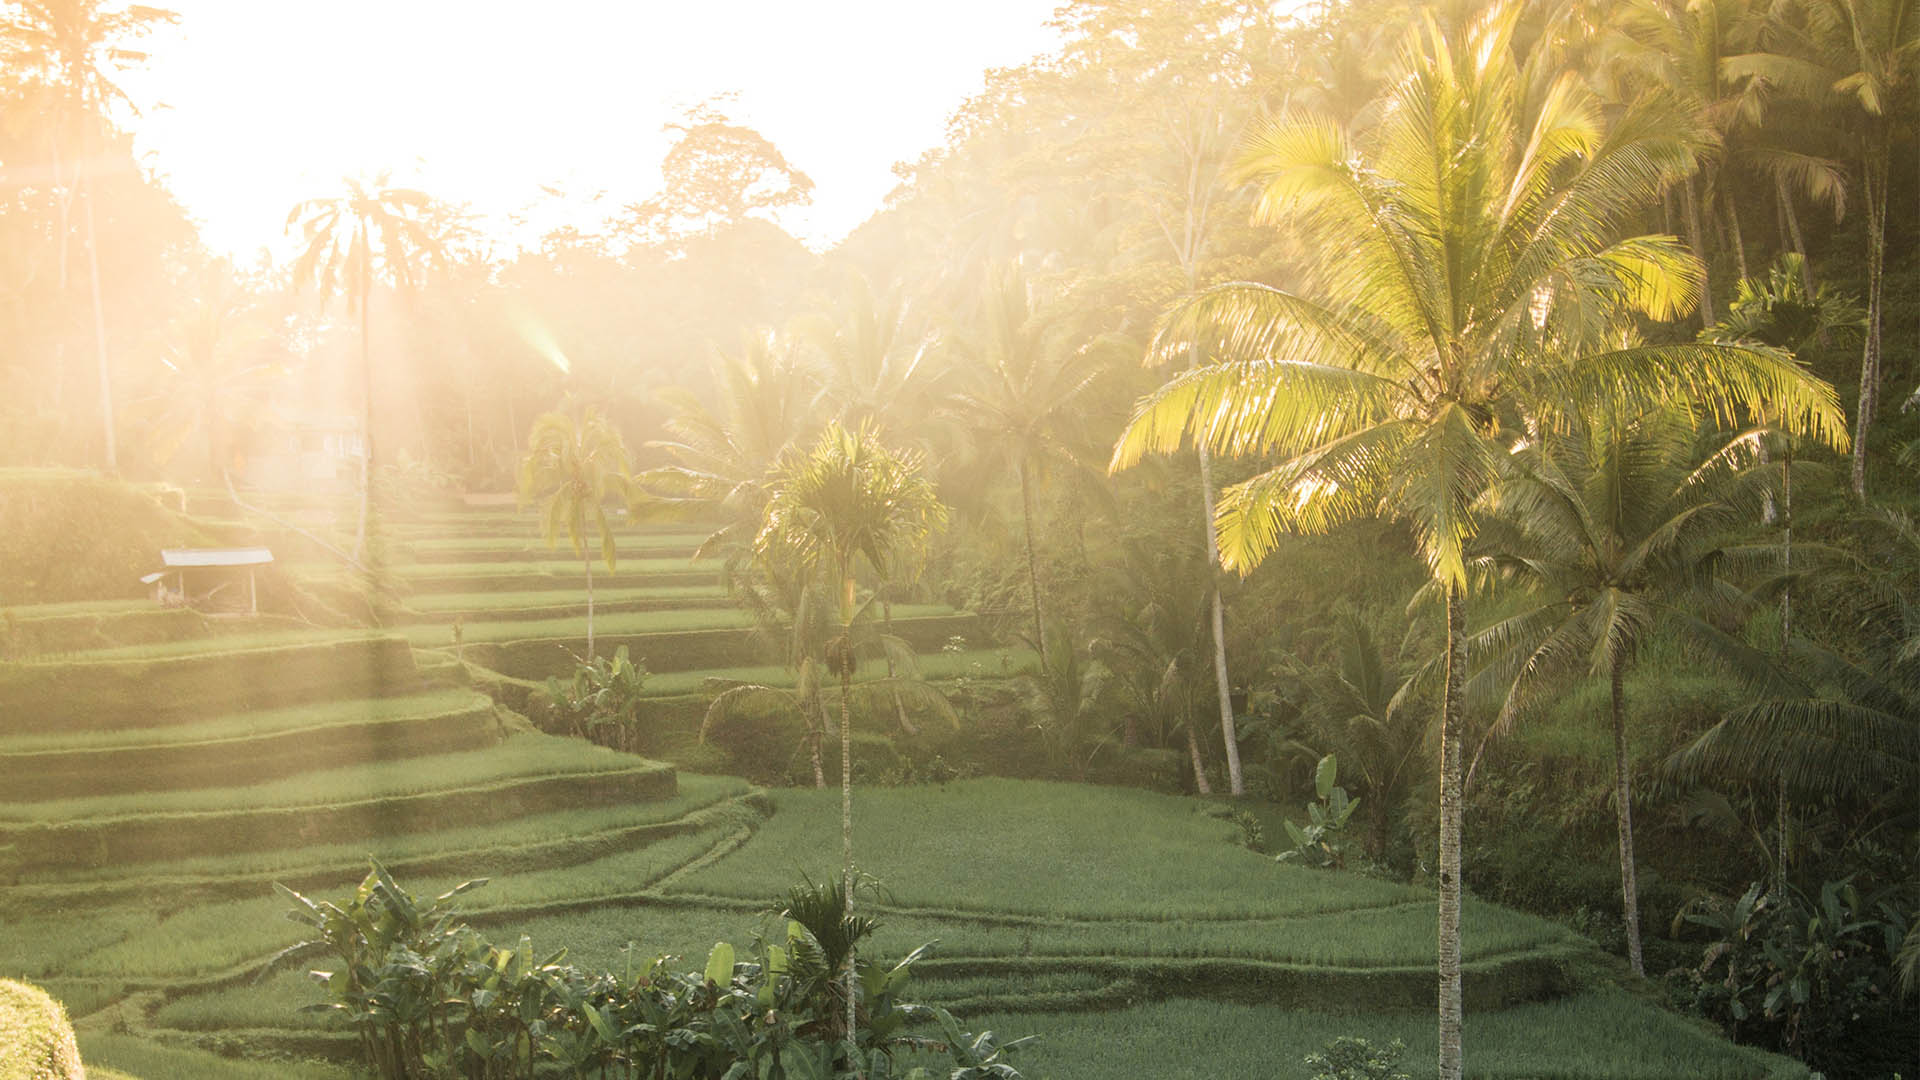 Green rice field paddies and palm trees